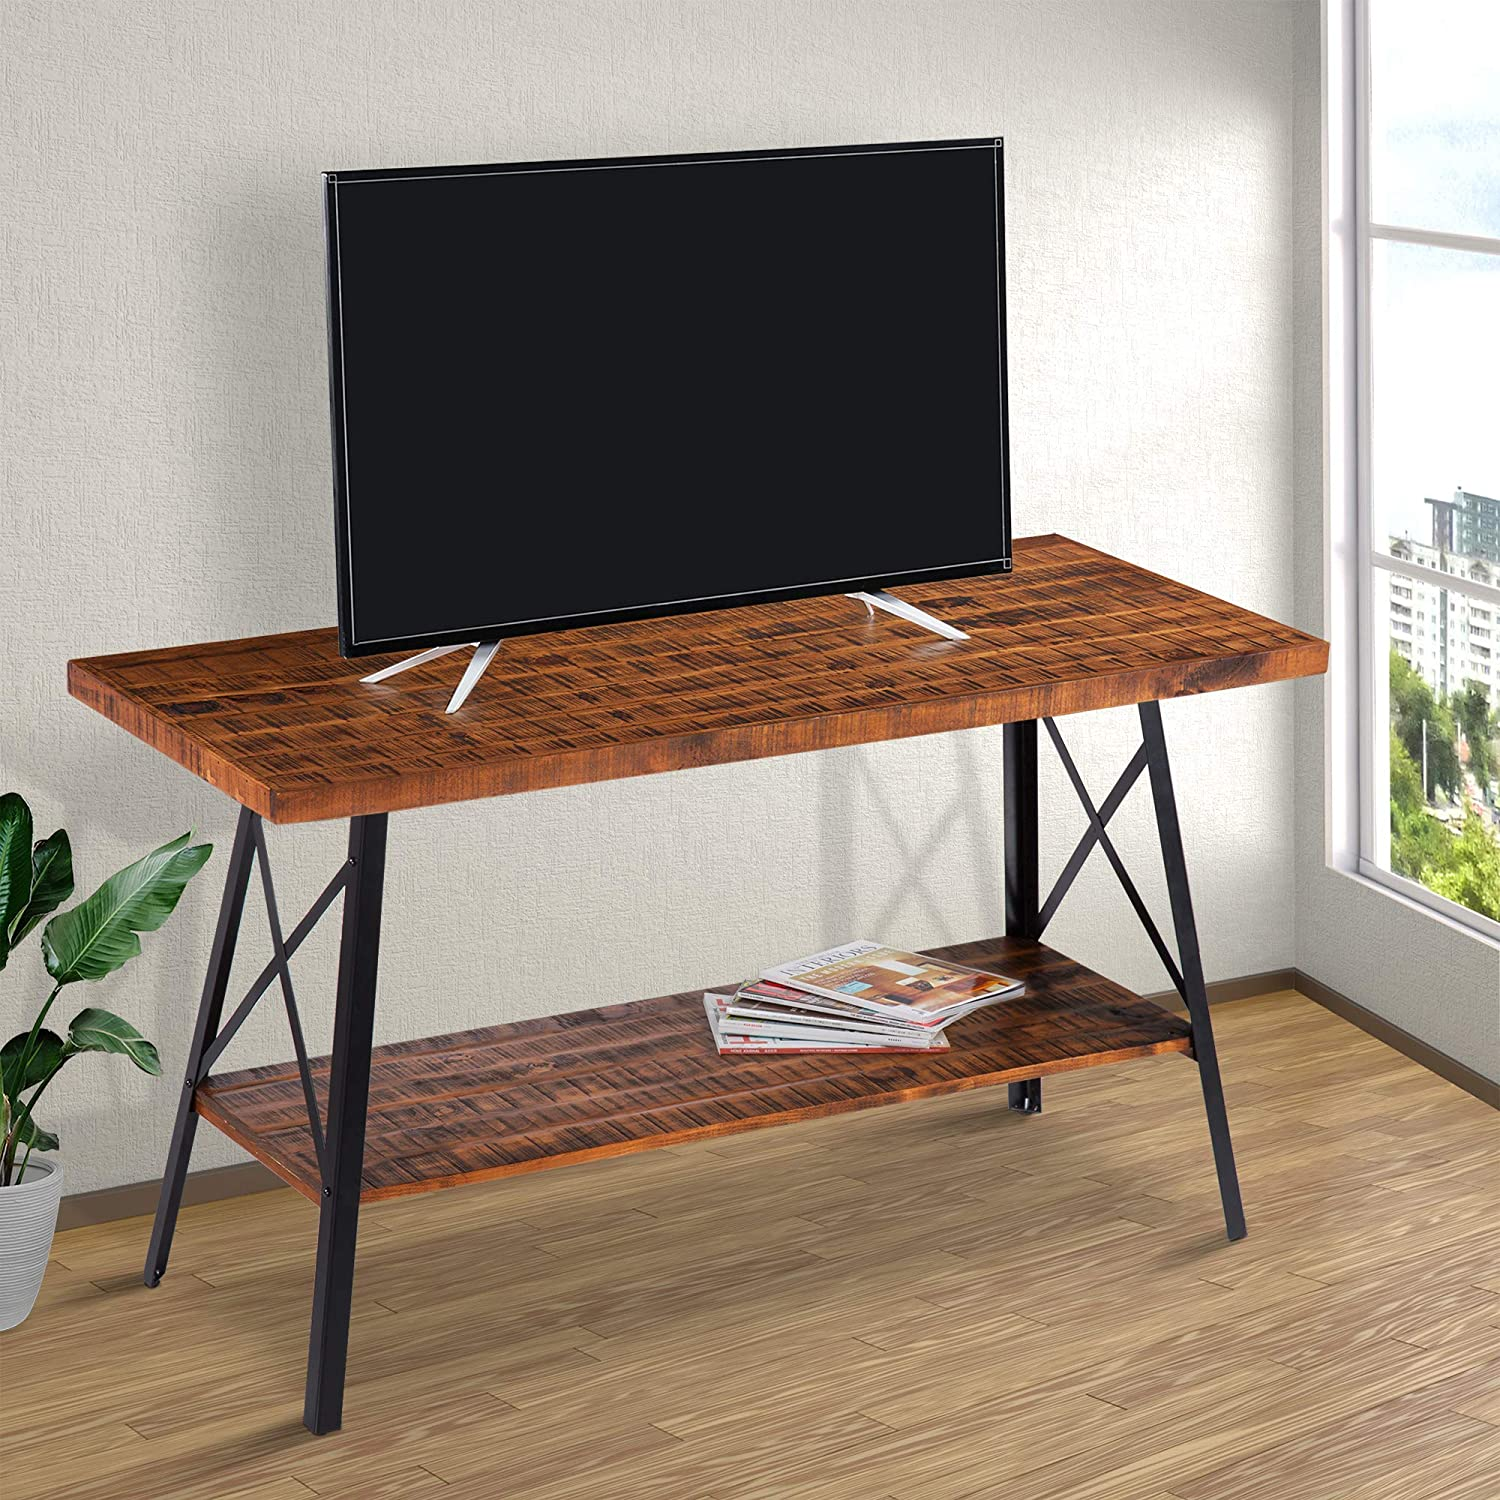 """CDM product Olee Sleep 48"""" Solid Wood & Dura Metal Legs Sofa Table/TV Stand/End Table/Side Table/Accent Table/Office Table/Computer Table/Dining Table/Natural Wood Top, Rustic Brown big image"""